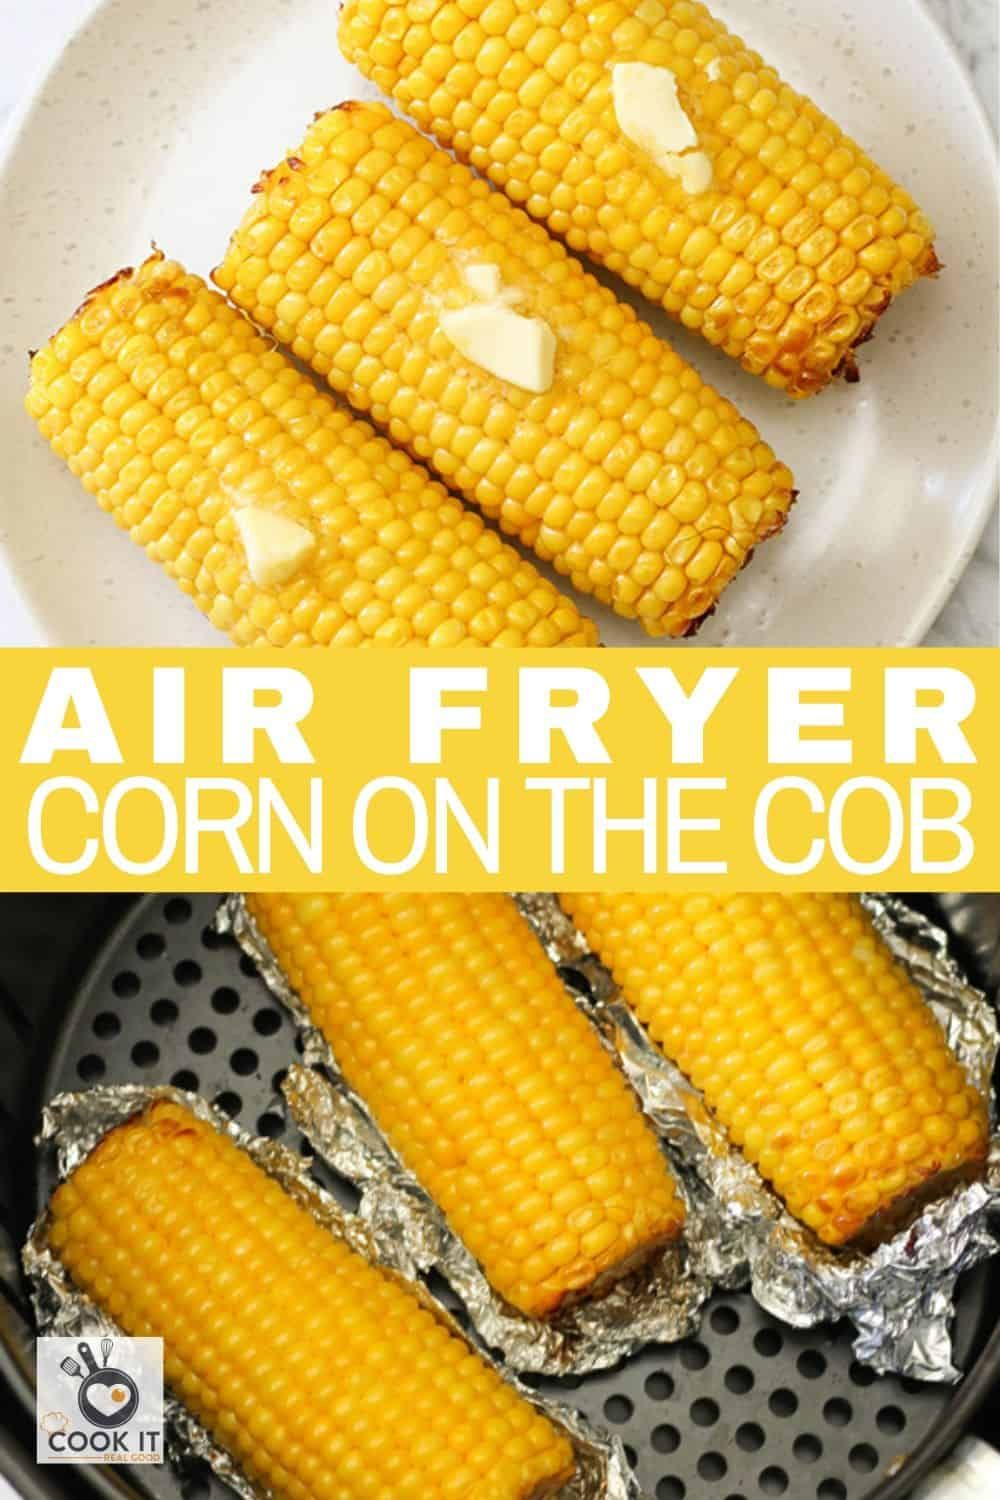 Air Fryer Corn on the Cob is a delicious side dish or